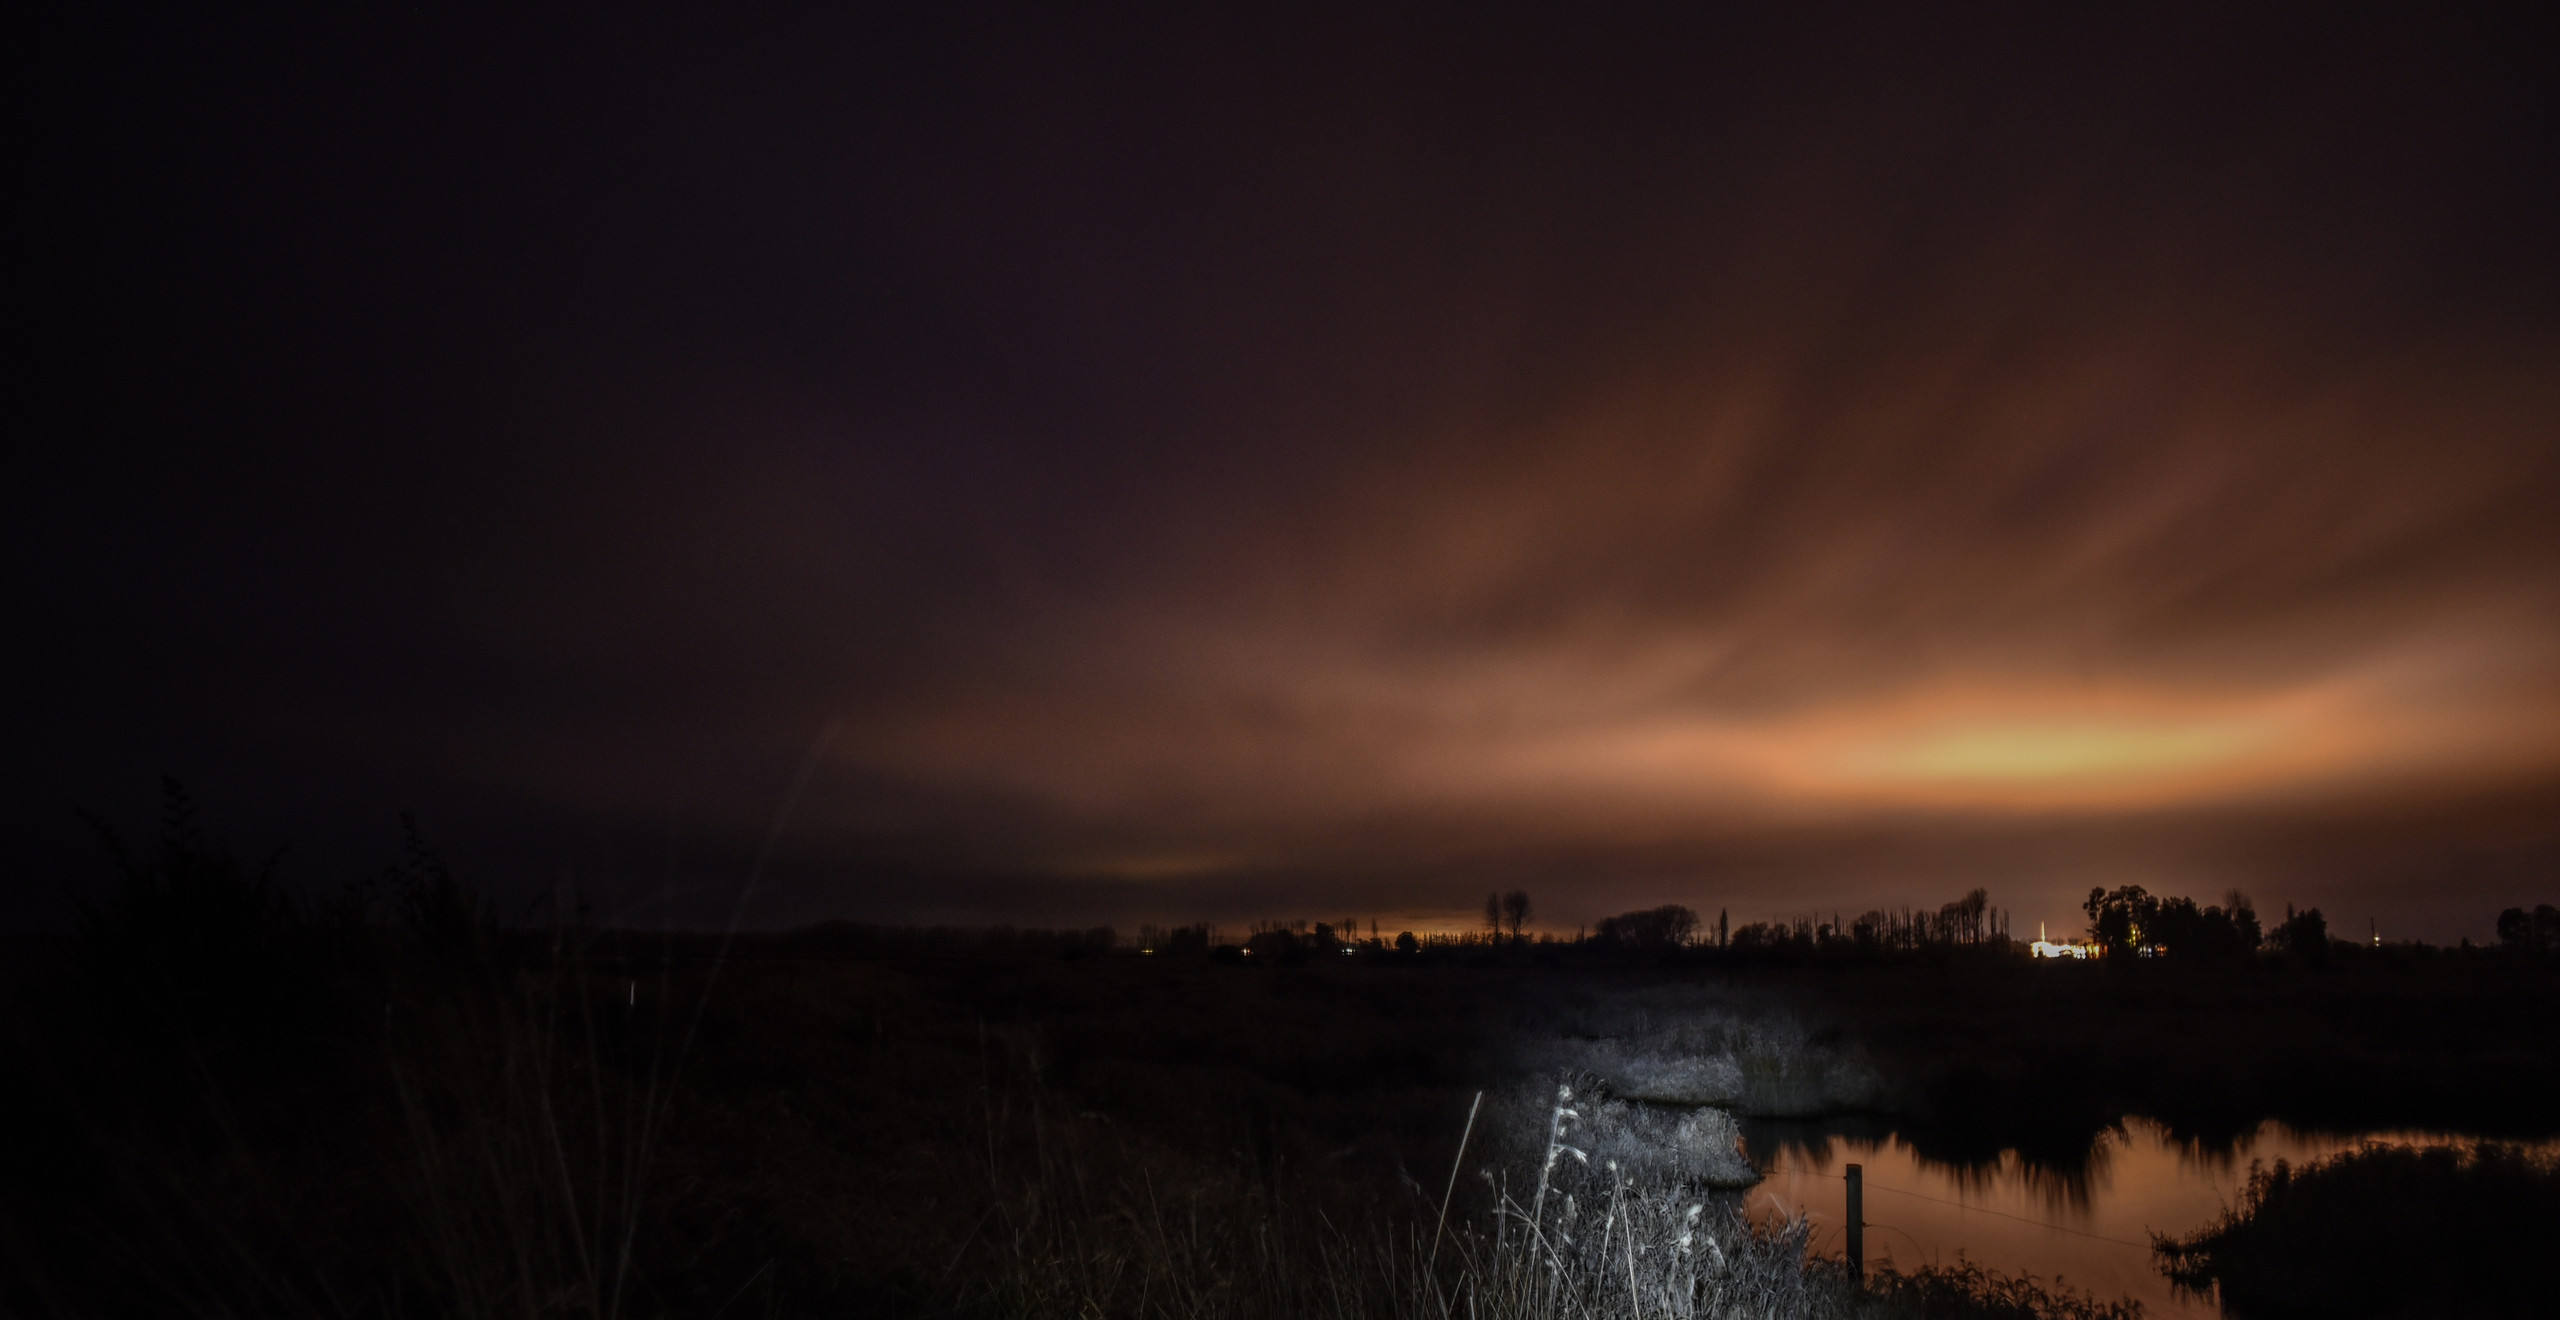 Light Pollution Reflection